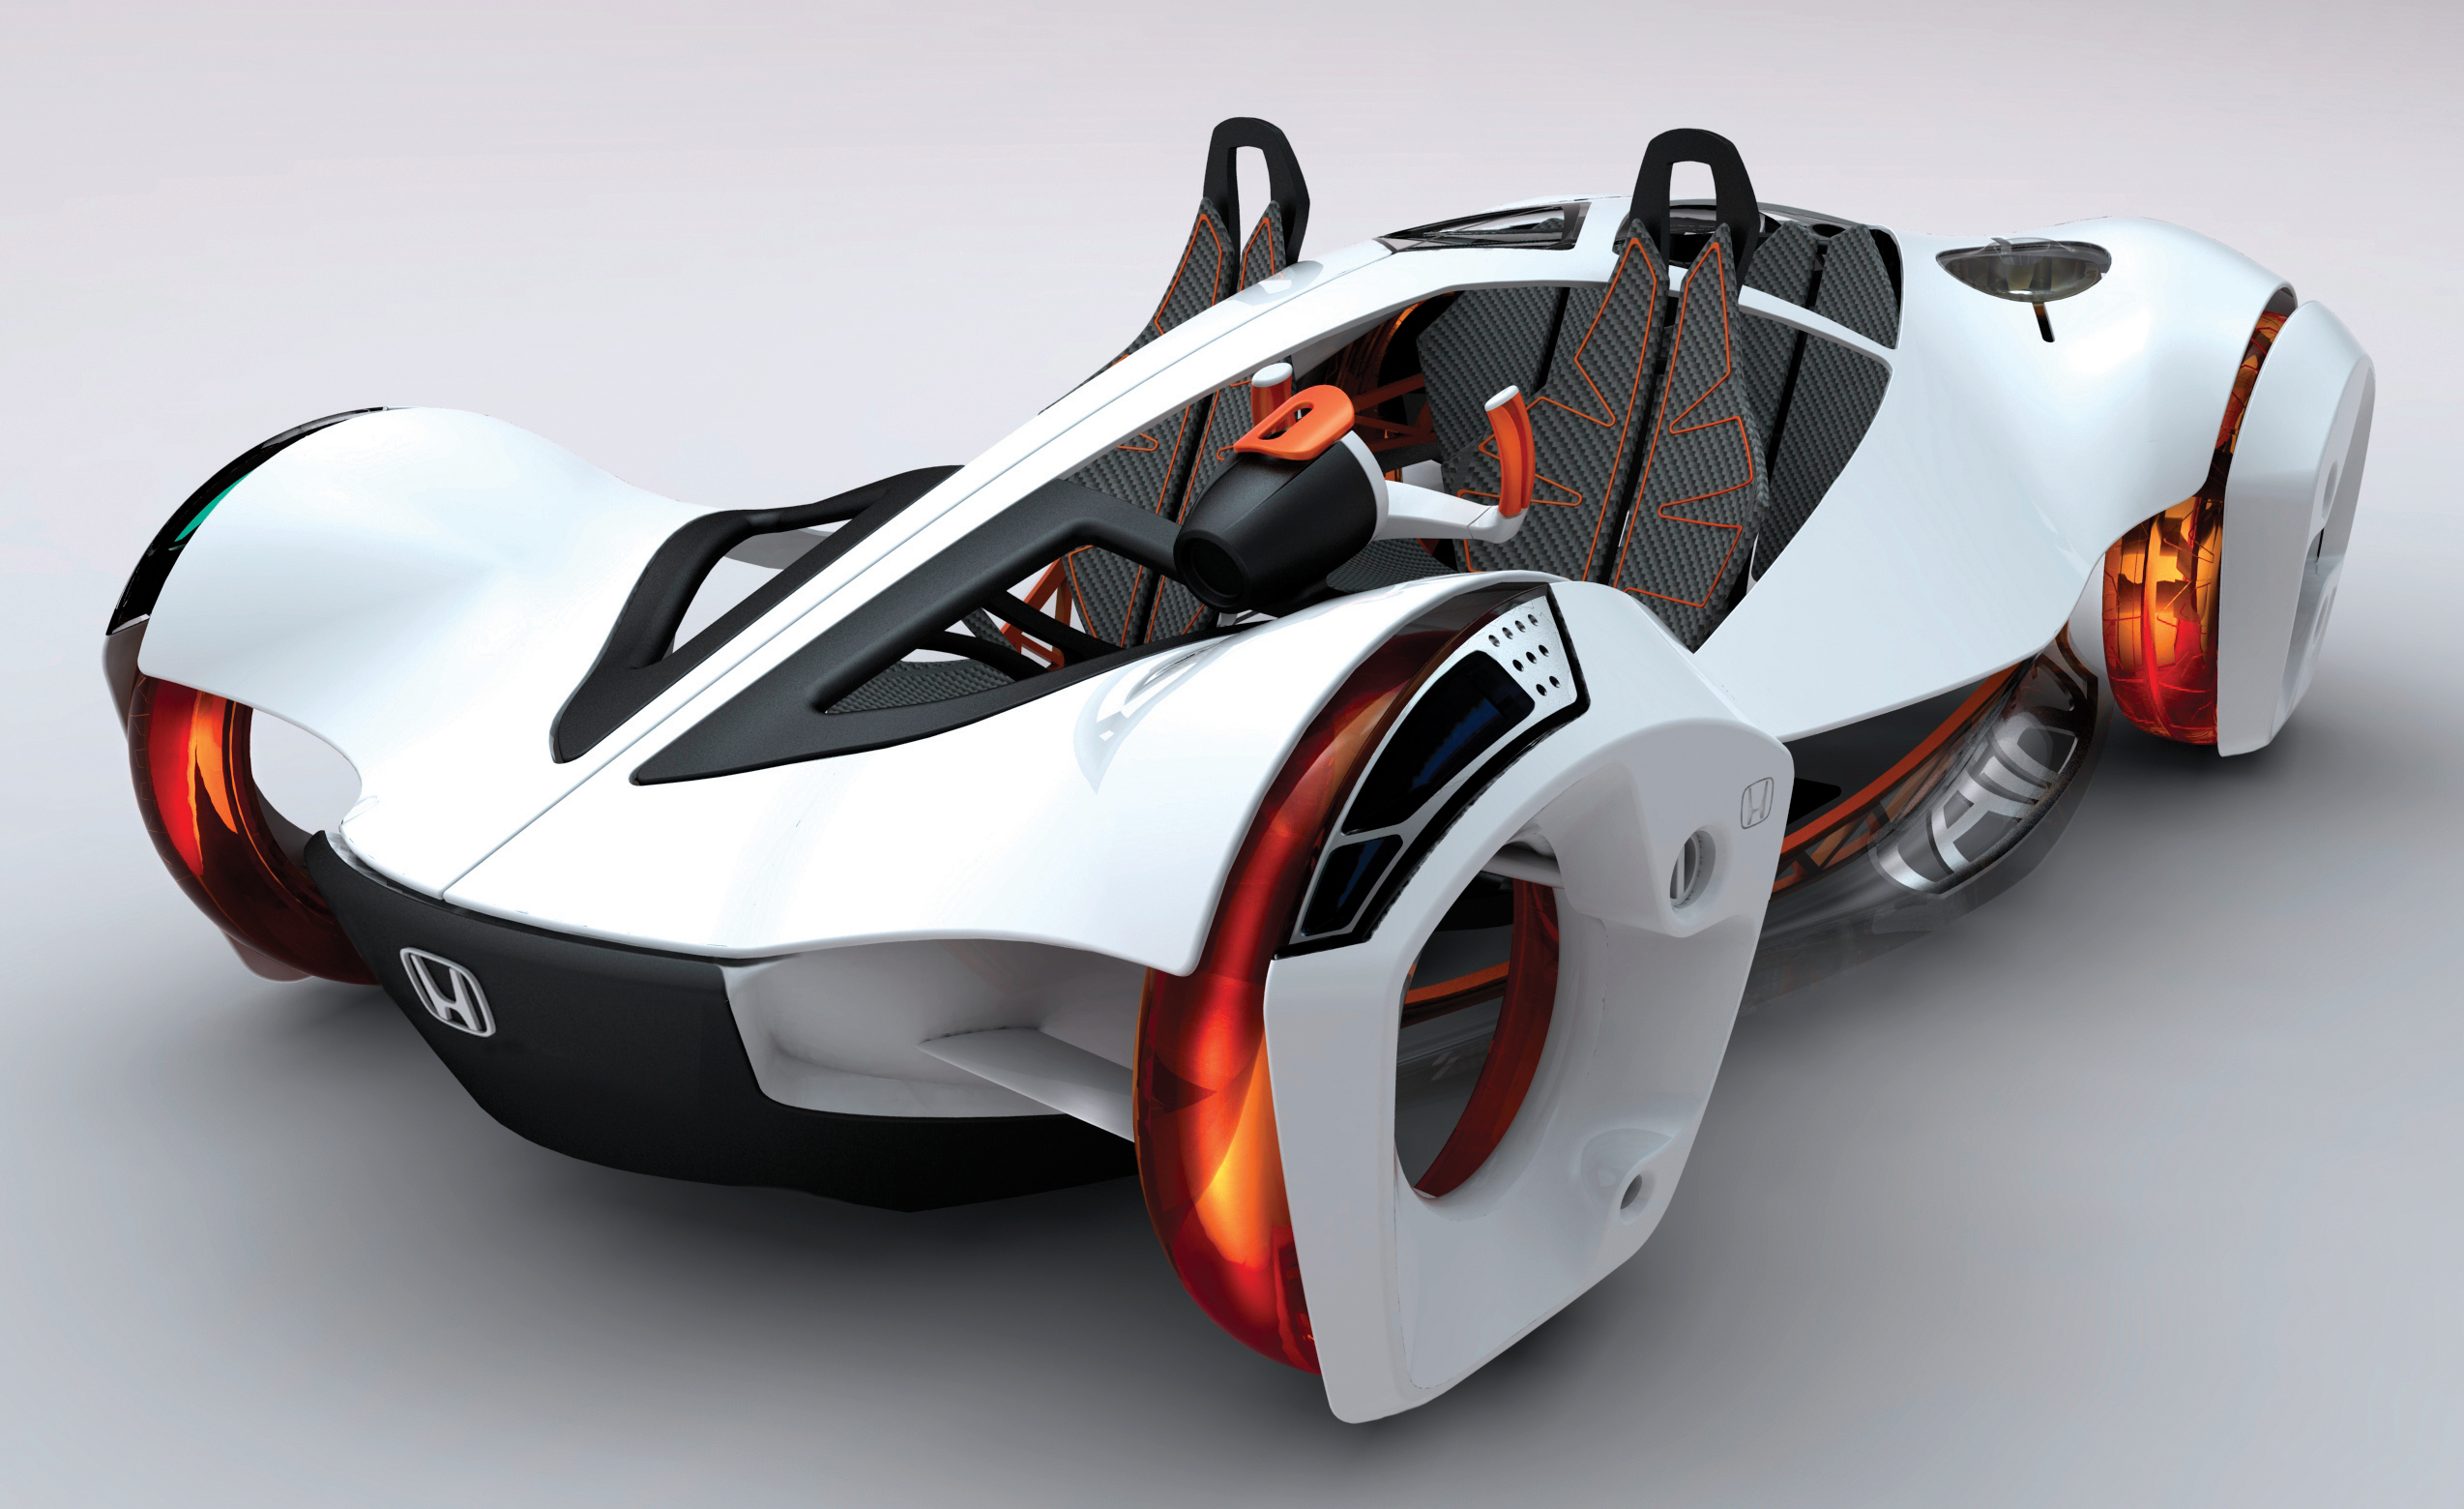 2010 Honda Air Concept Review - Top Speed